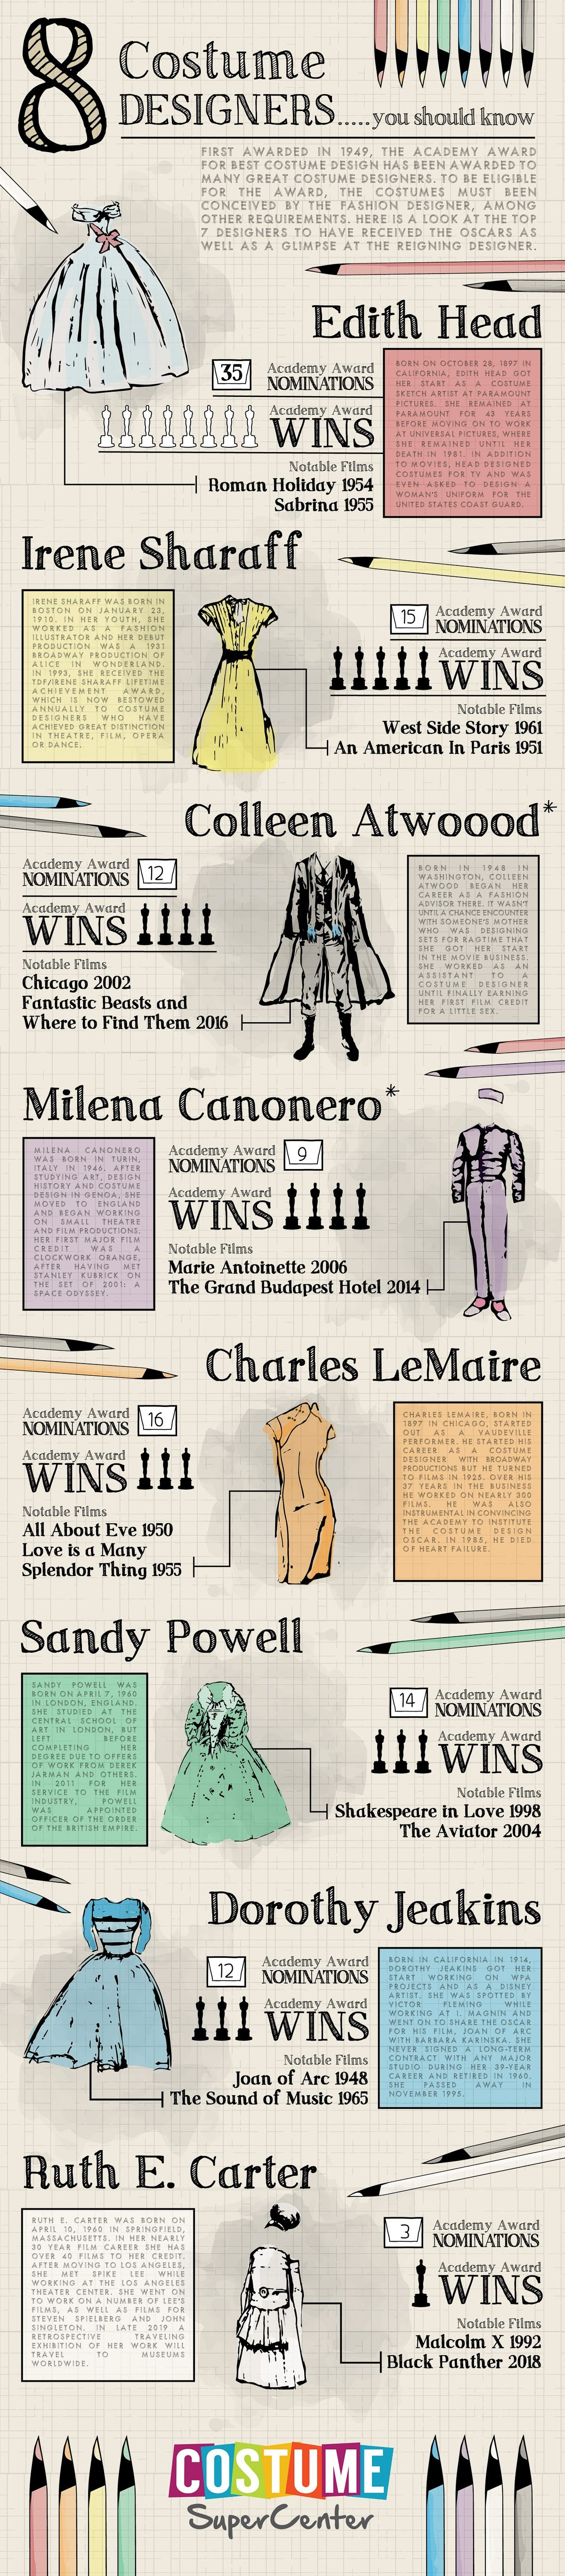 8 Costume Designers You Should Know #Infographic